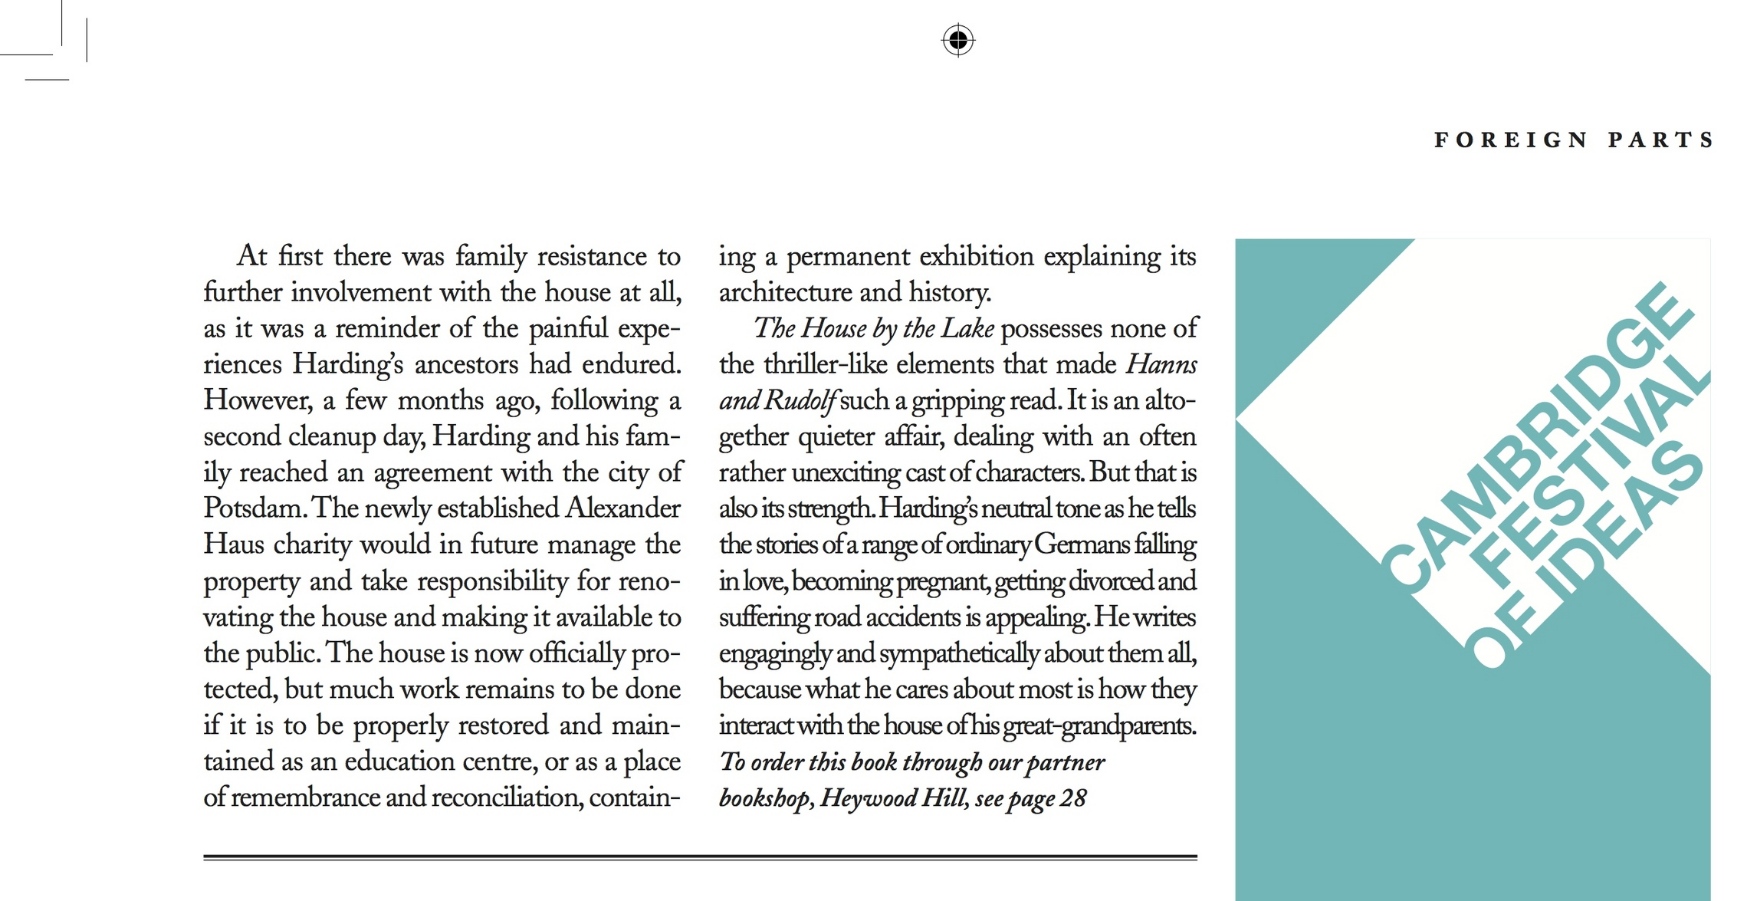 Literary Review 23 October 2015 p2